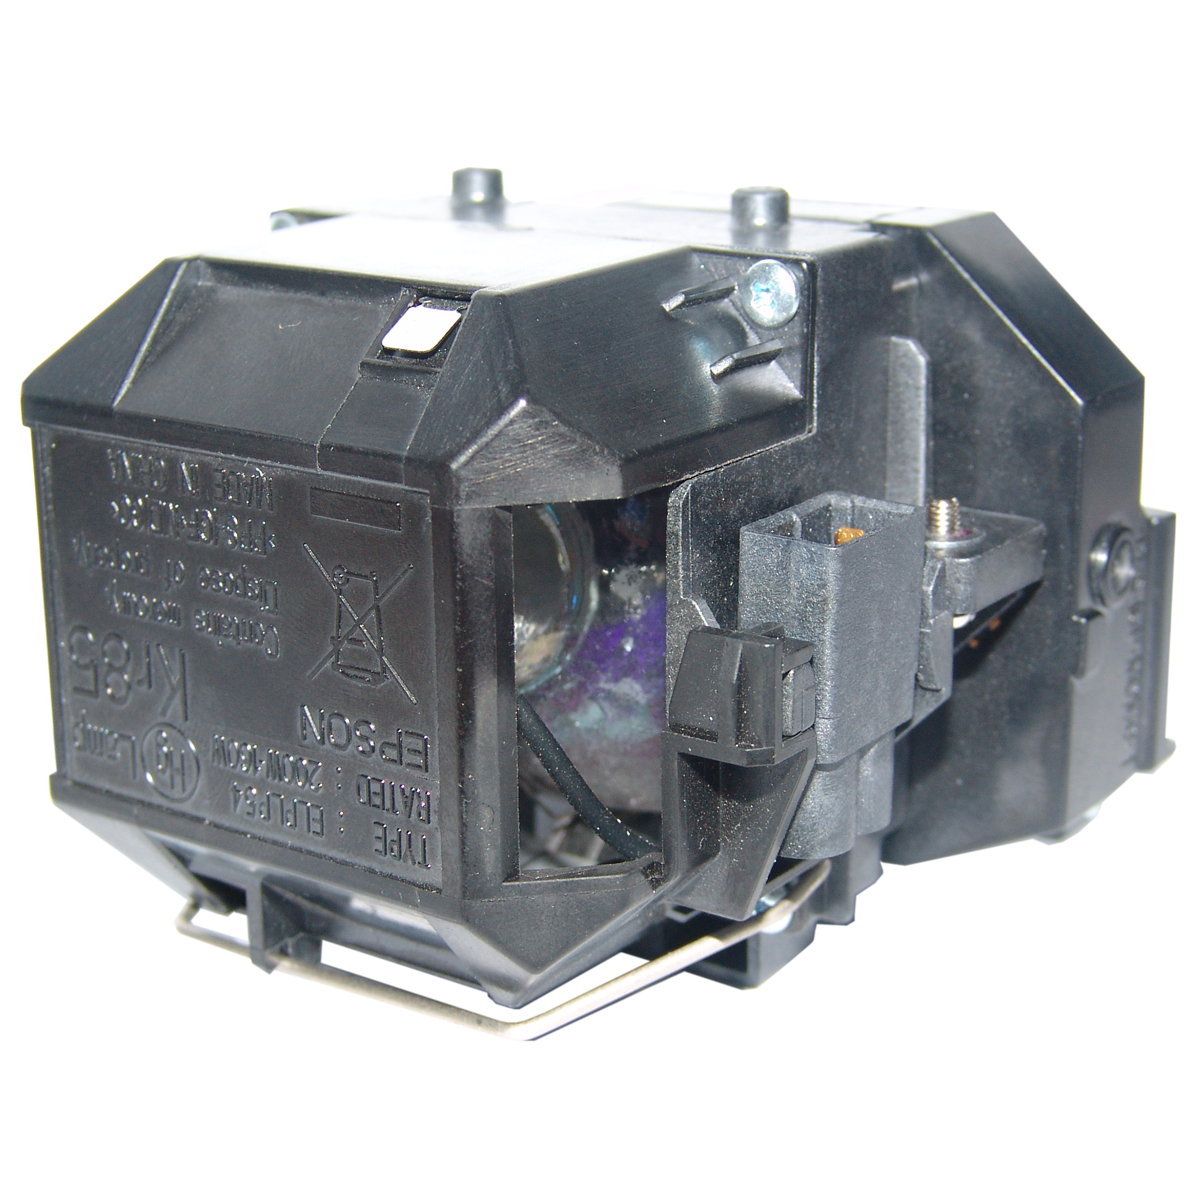 Original Osram Projector Lamp Replacement with Housing for Epson EB-X72 - image 3 of 5